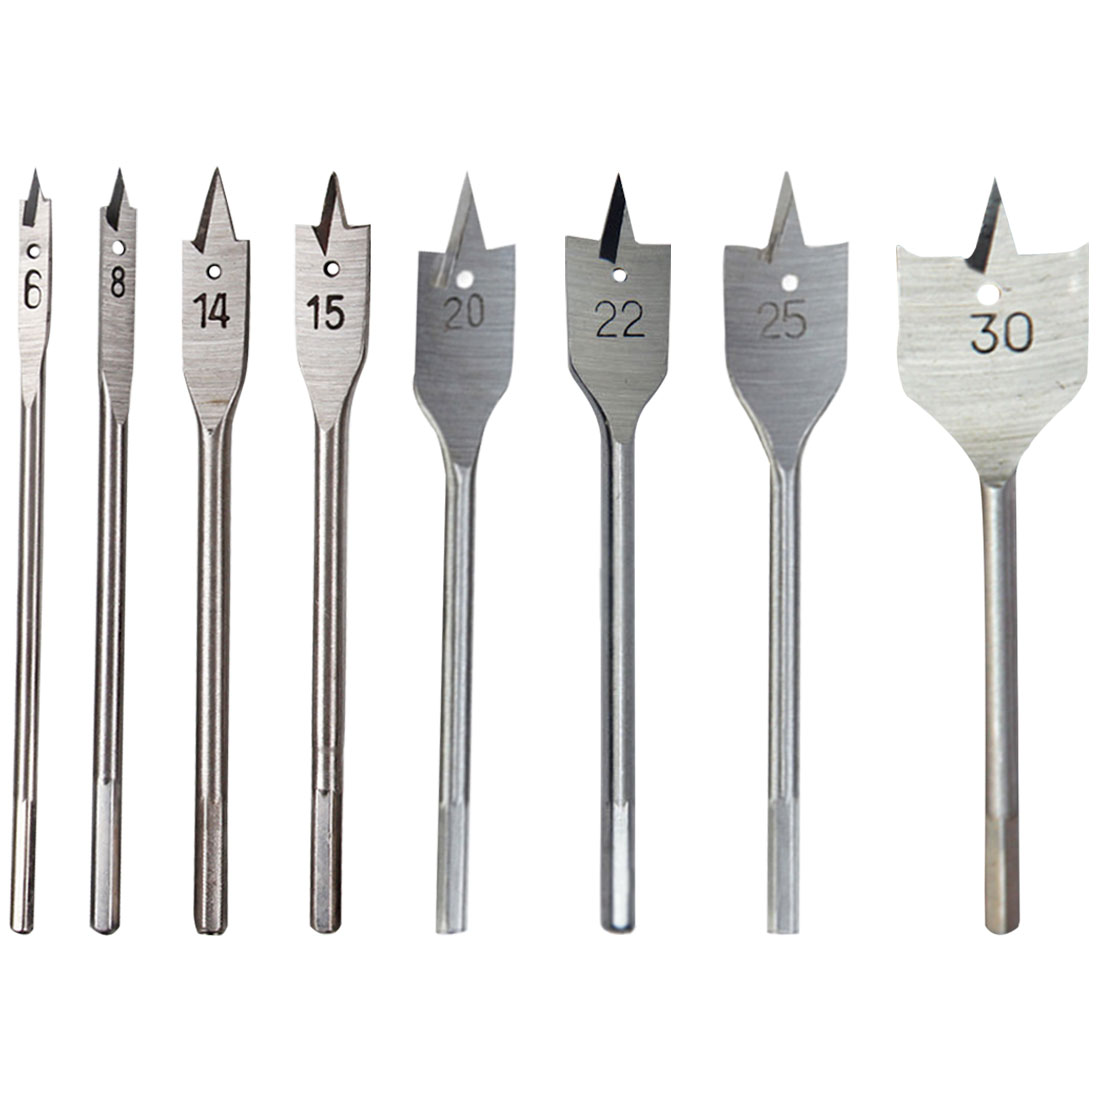 High-carbon Steel 6-30mm Drill Wood Flat Drill Set Woodworking Spade Drill Bits Durable Woodworking Tool Sets Spade Drill Bit